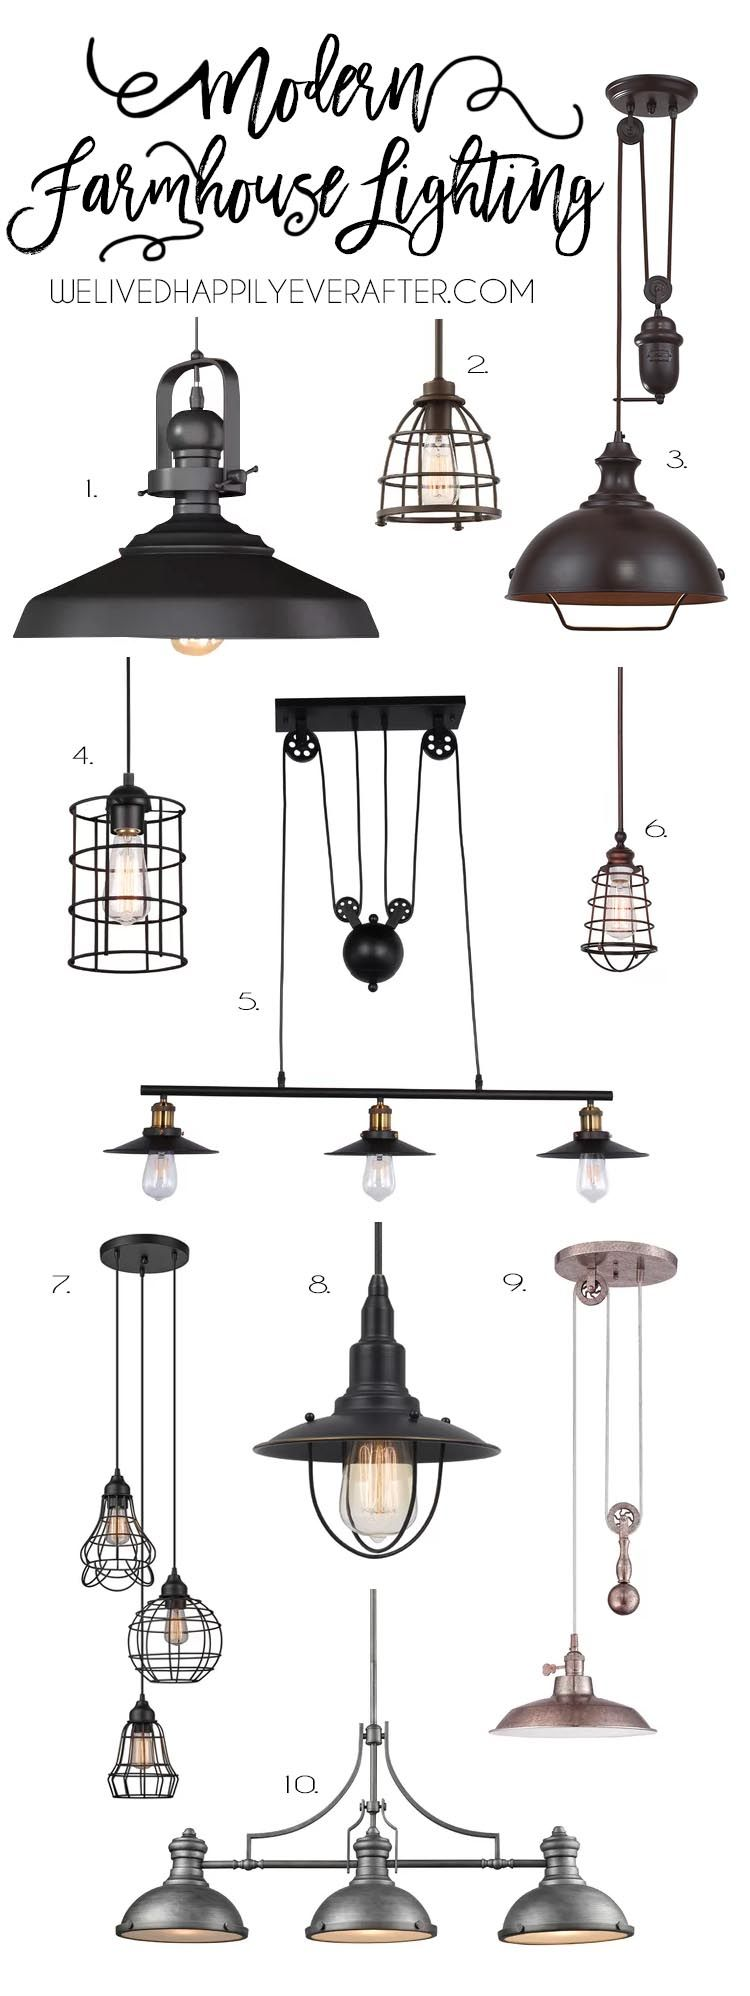 Rustic Industrial Modern Farmhouse Metal Lighting For Your Home Decor Hannahsfarmhousefavs We Lived Happily Ever After Industrial Home Design Metal Lighting Rustic Industrial